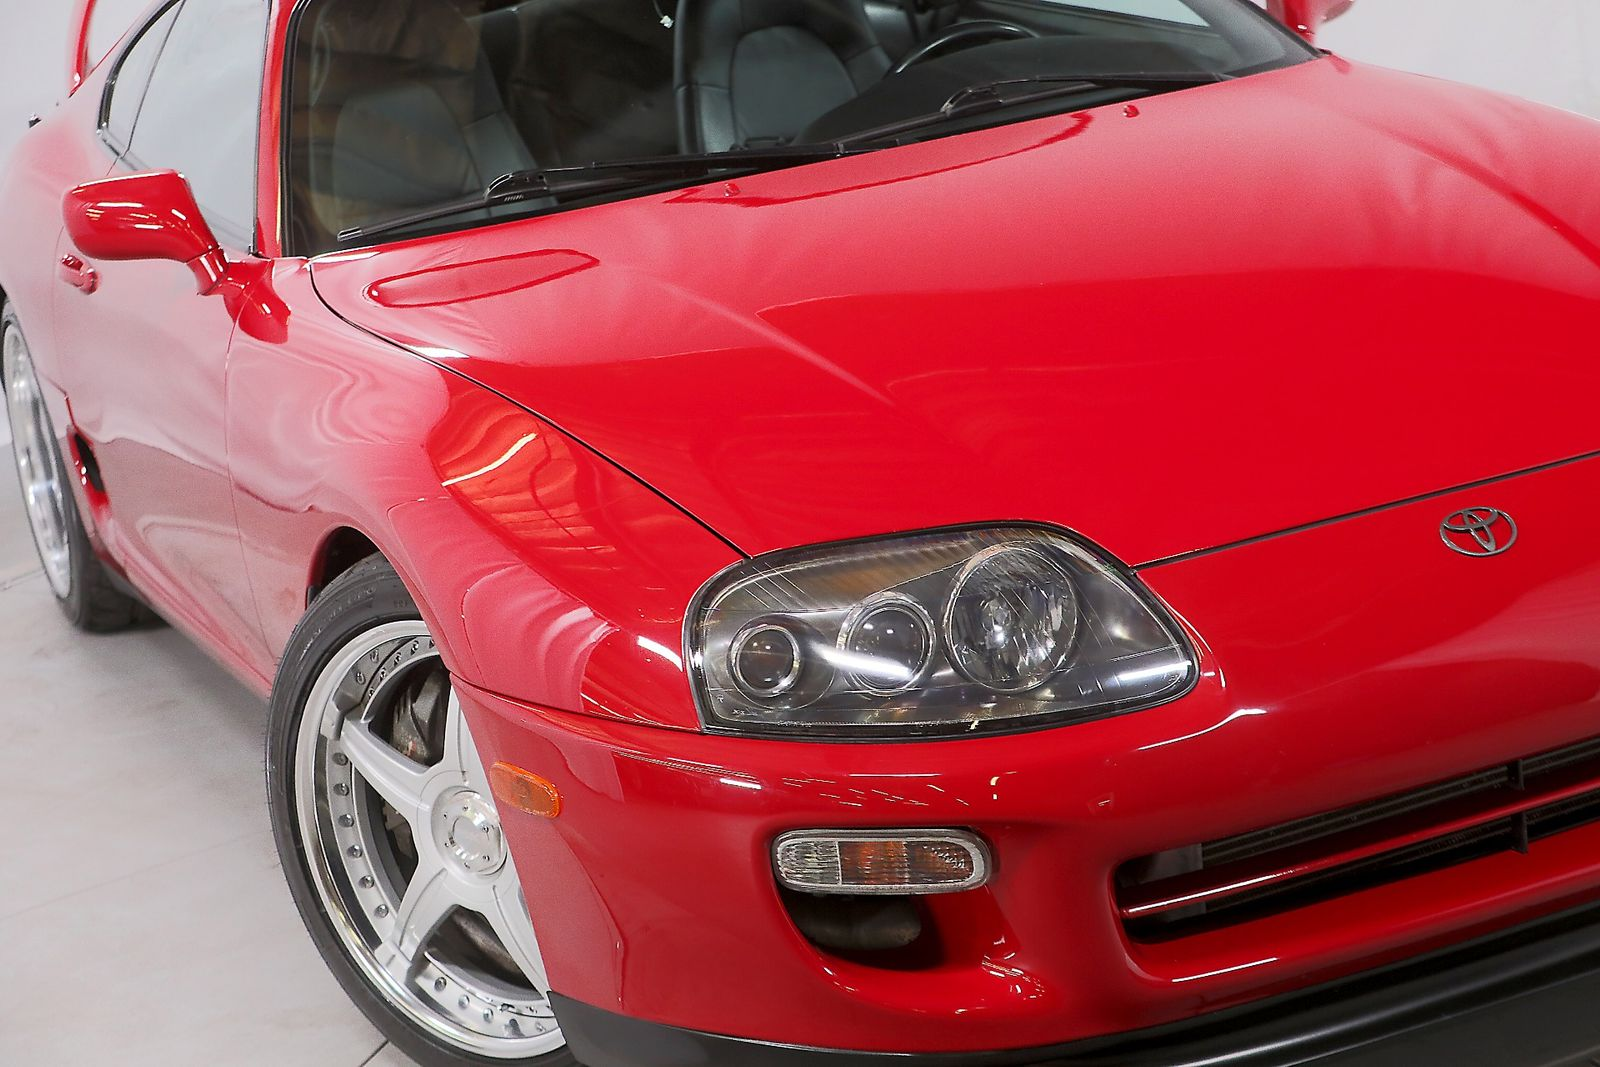 1998 Toyota Supra Turbo Bpu Manual Targa Top City California Fcd Fuel Cut Defencer Mdk International